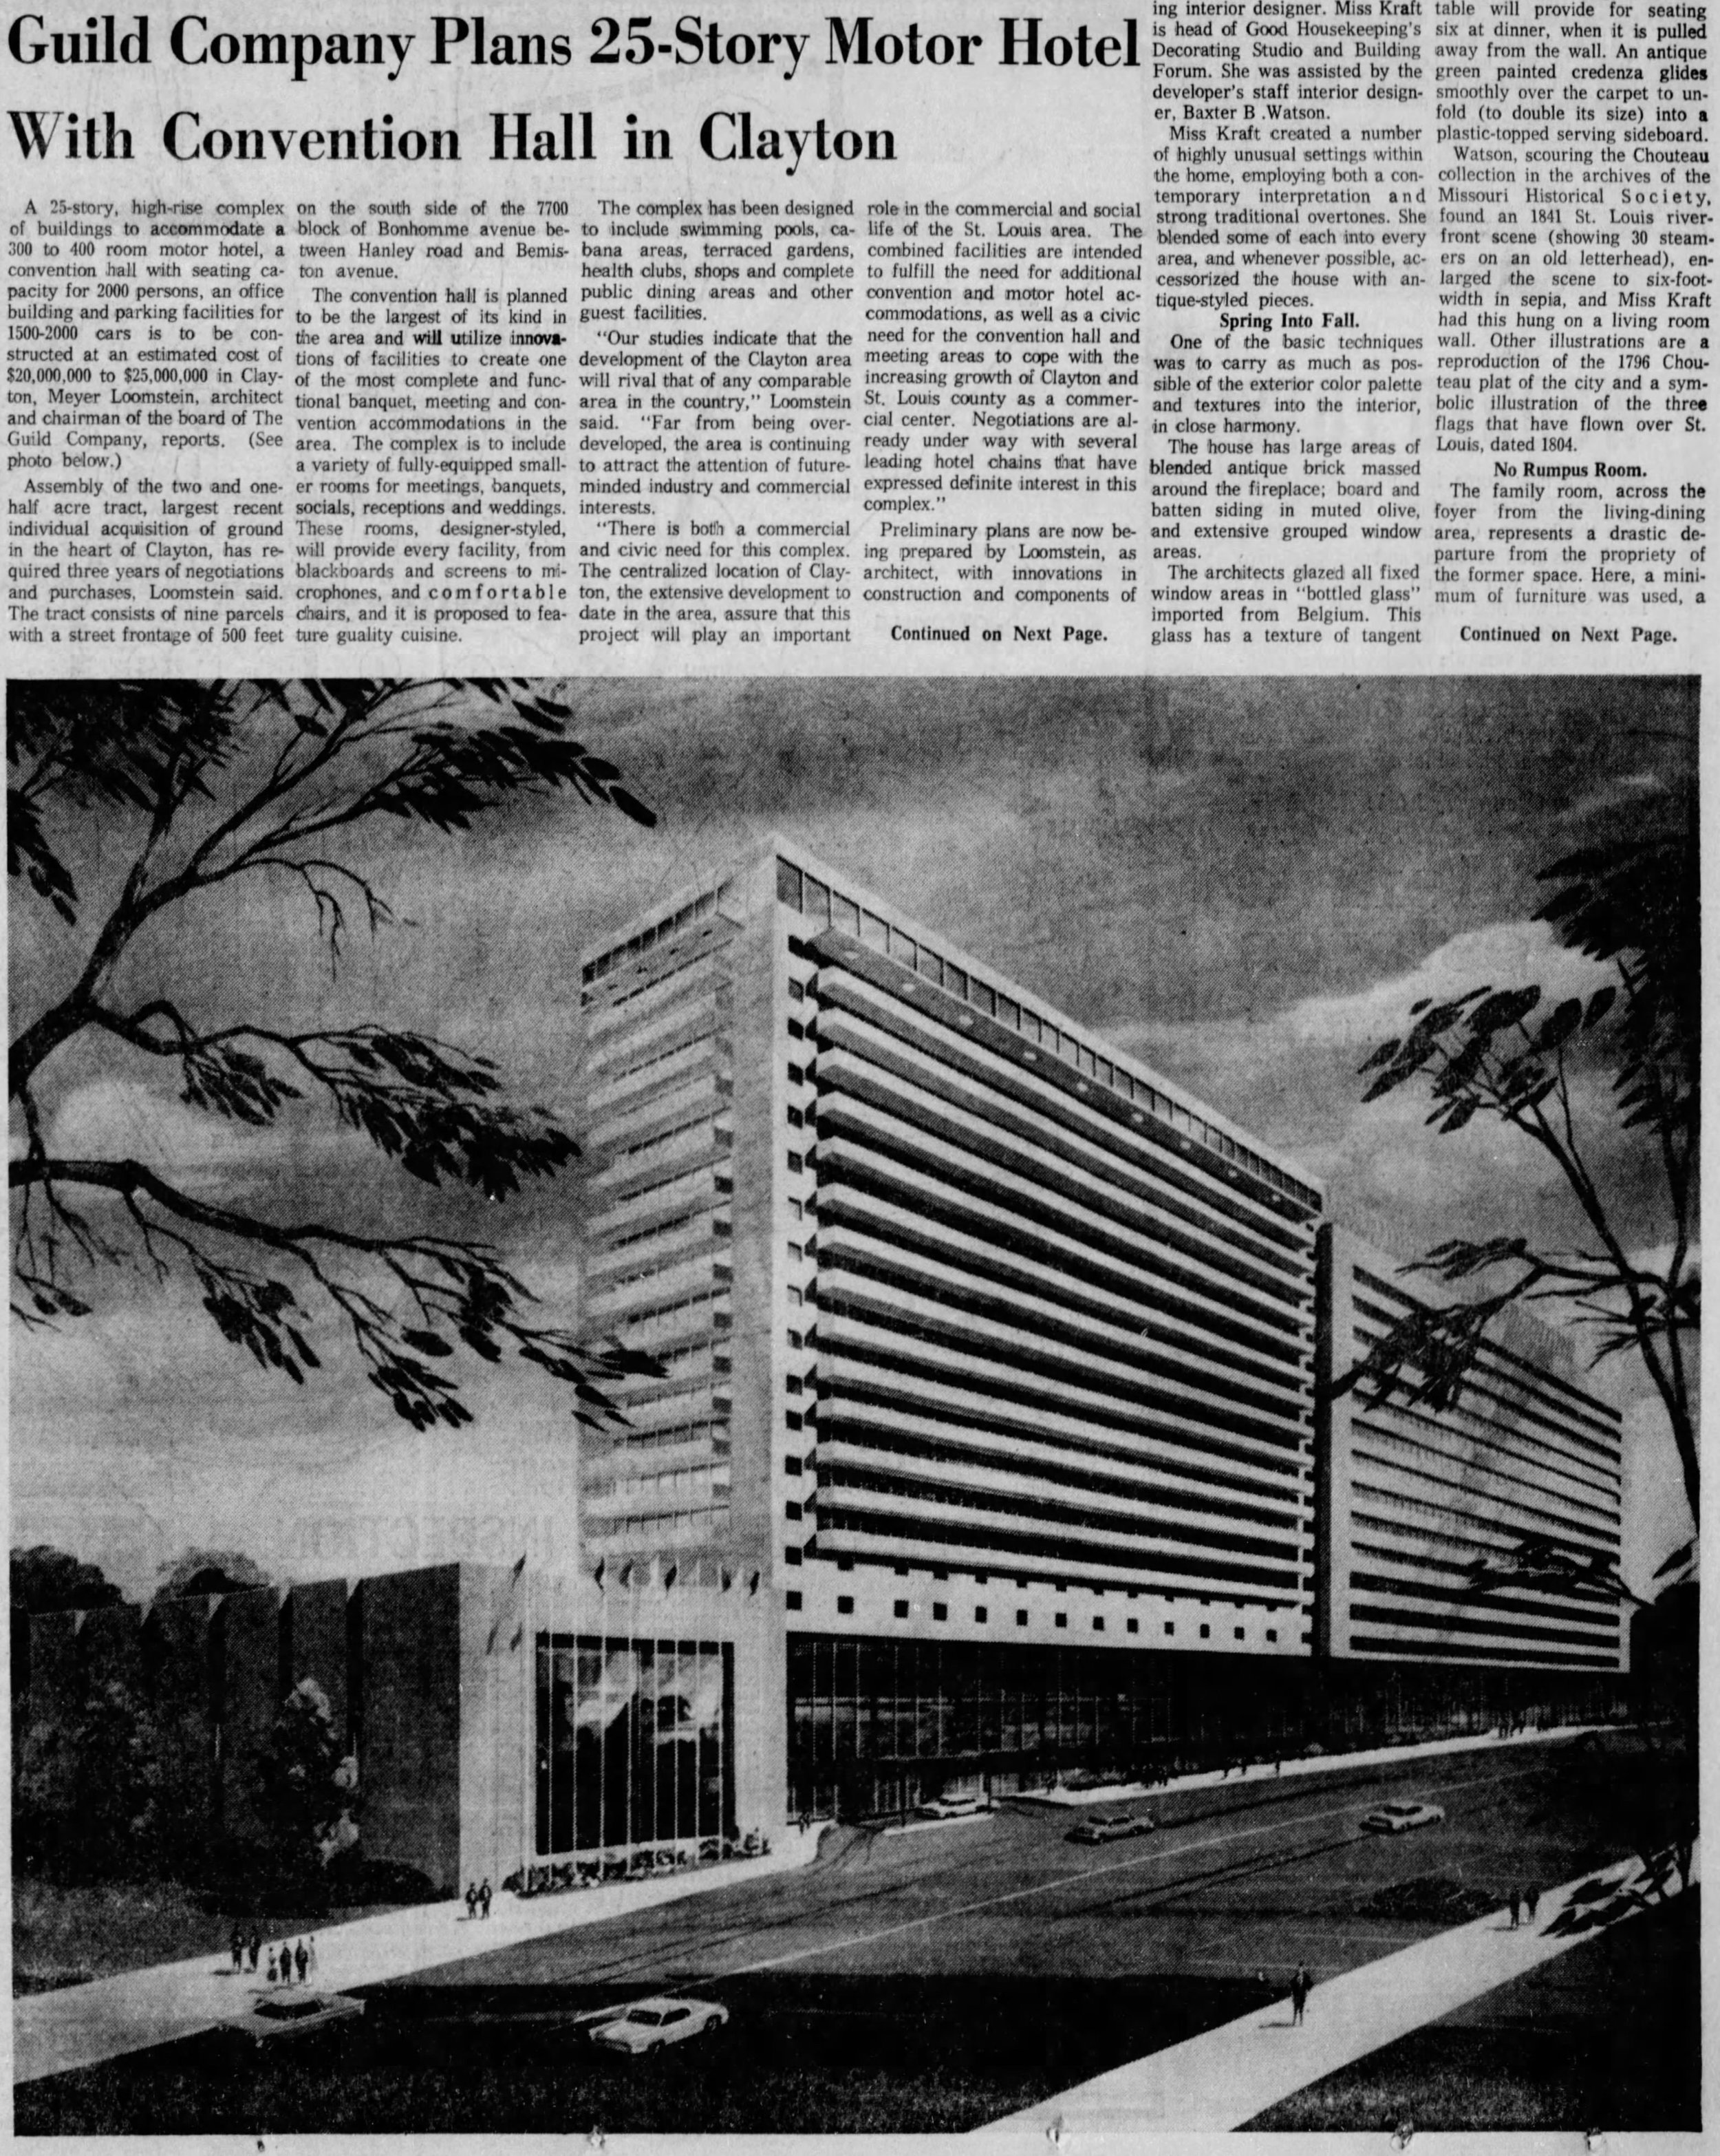 """Guild Company Plans 25-Story Motor Hotel With Convention Hall in Clayton,"" St. Louis Post Dispatch, 1962,  Newspapers.com"